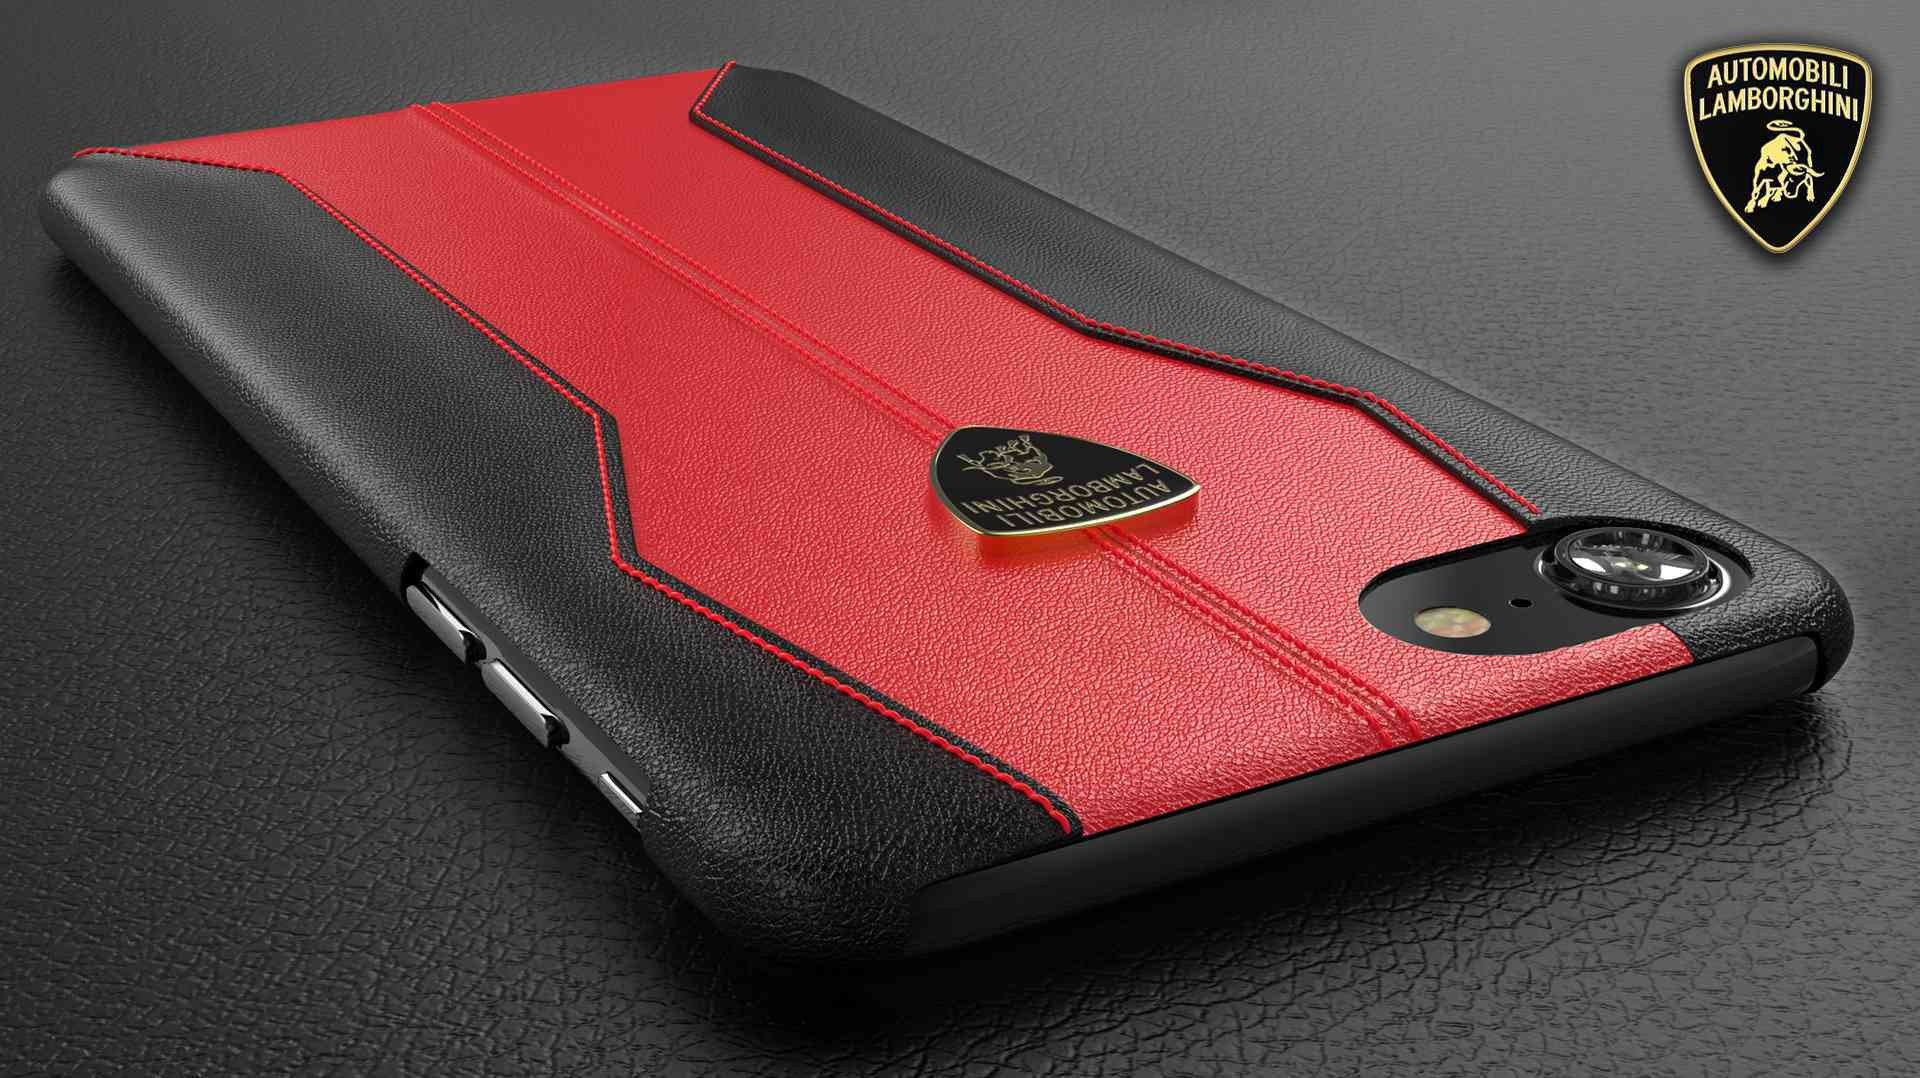 Lamborghini 174 Apple Iphone 7 Official Huracan D1 Series